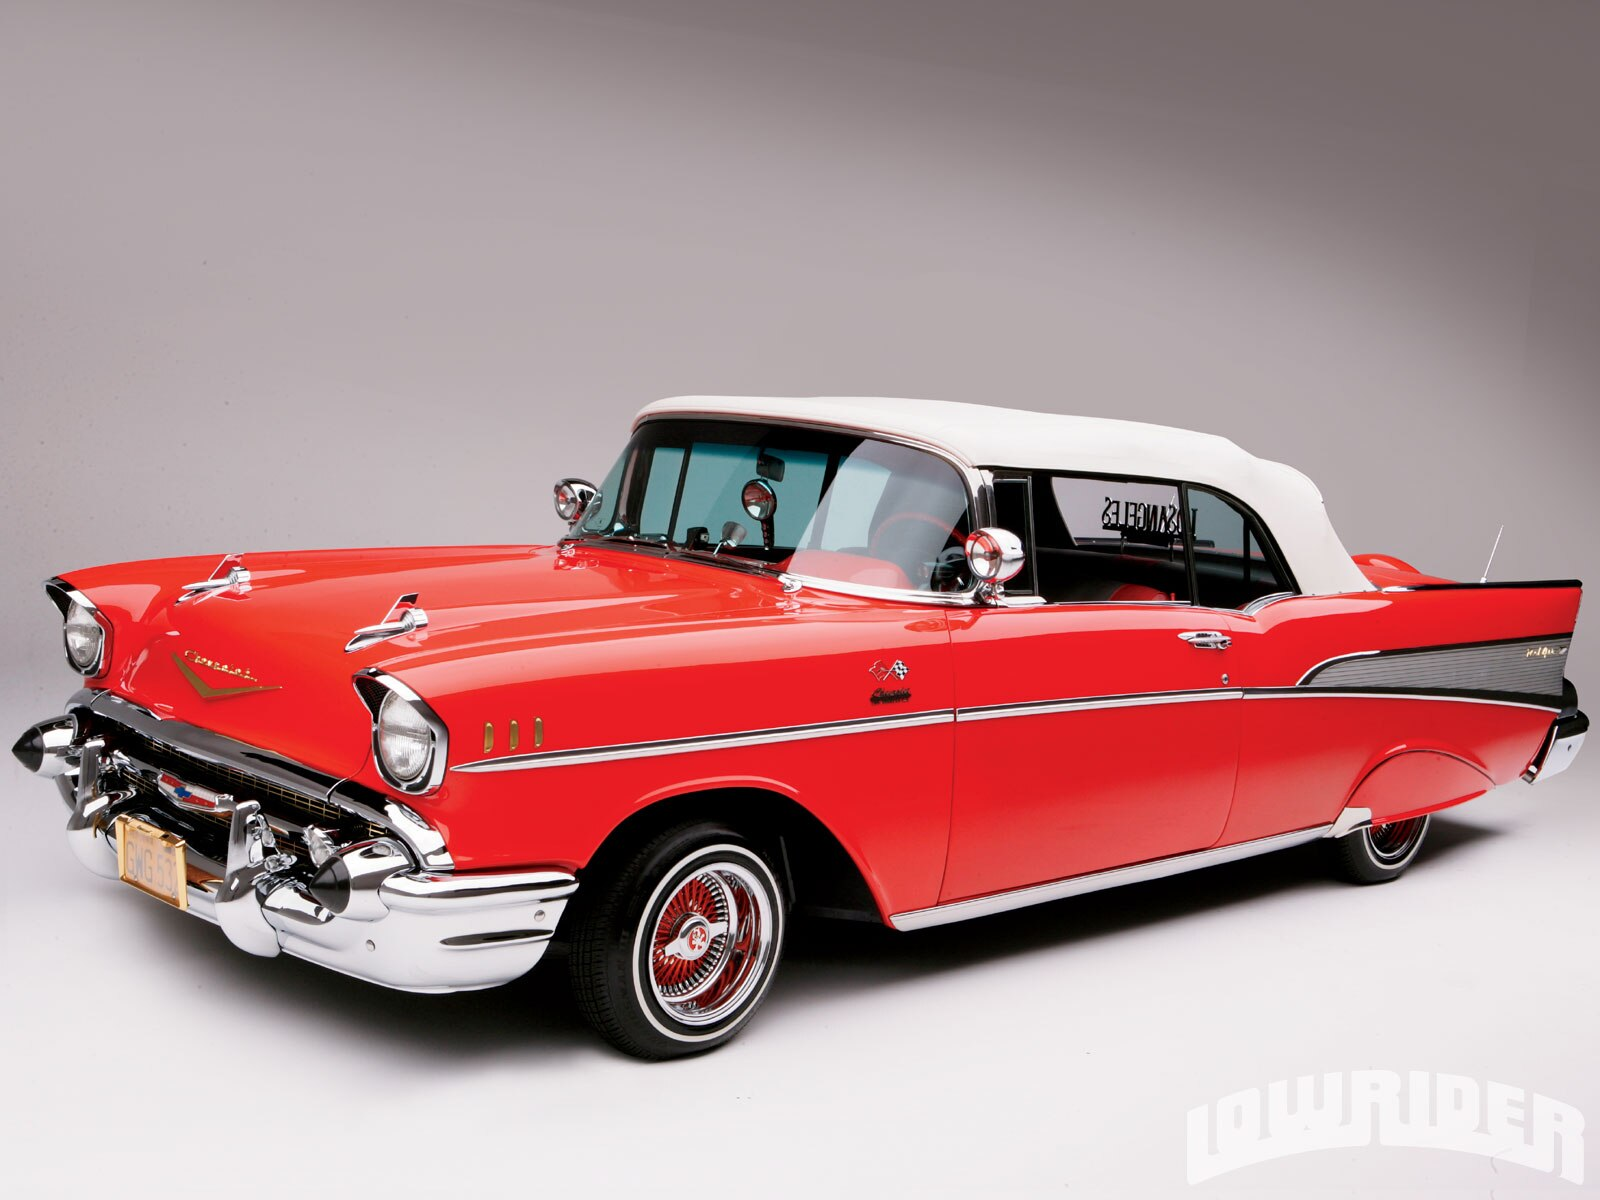 lrmp-1012-04-o-1957-chevy-bel-air-convertible-front-view2